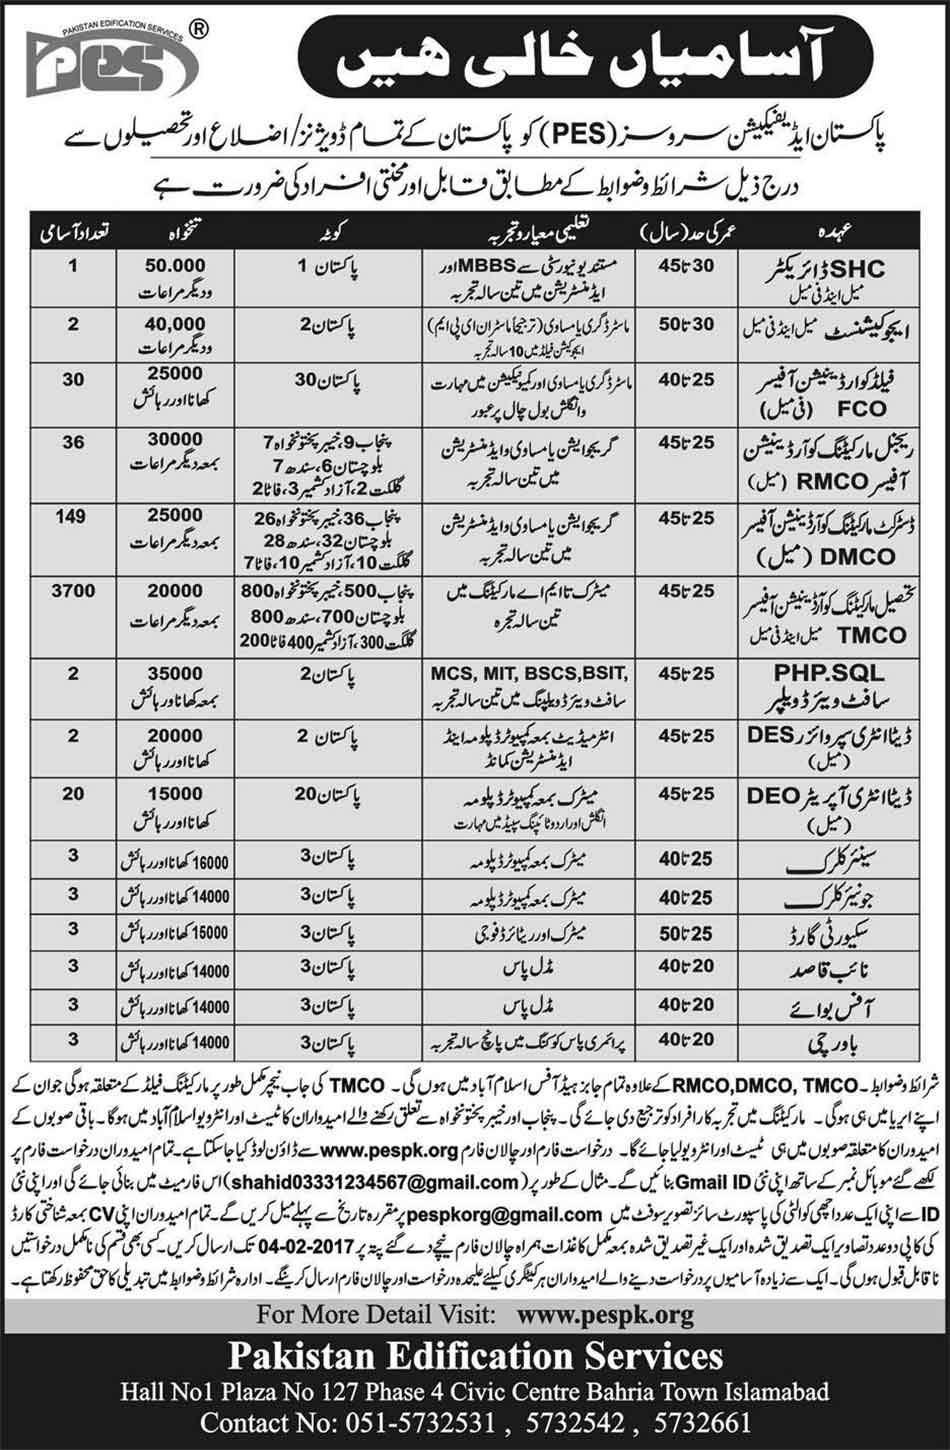 Jobs In Pakistan Edification Services 2017